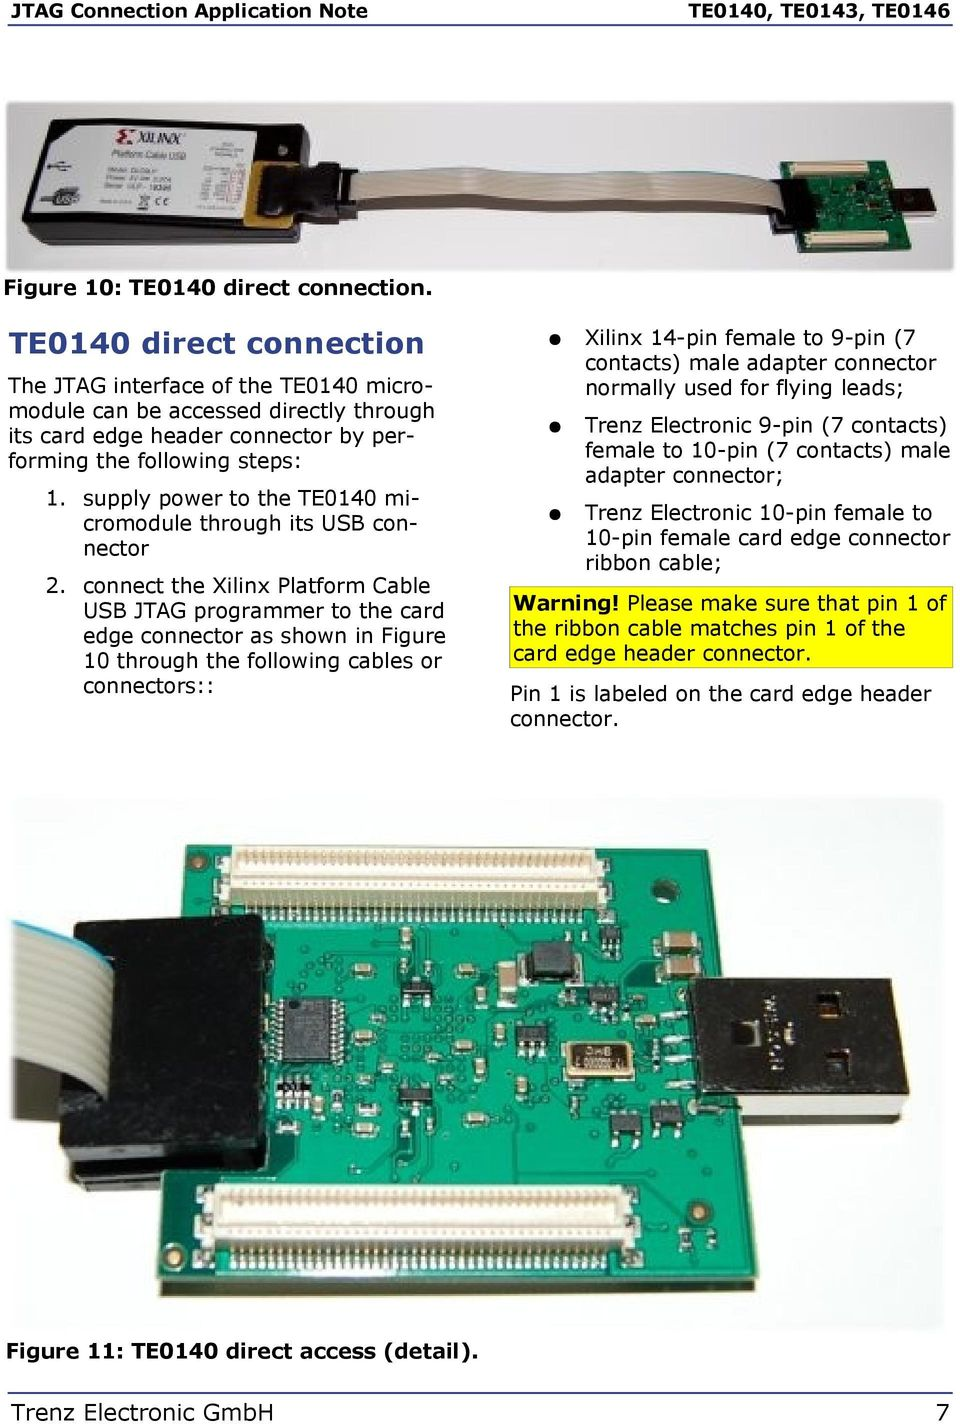 Jtag Connection Application Note Pdf Digilent Cable Schematic Usb 7 Contacts Male Adapter Connector Normally Used For Flying Leads Trenz Electronic 9